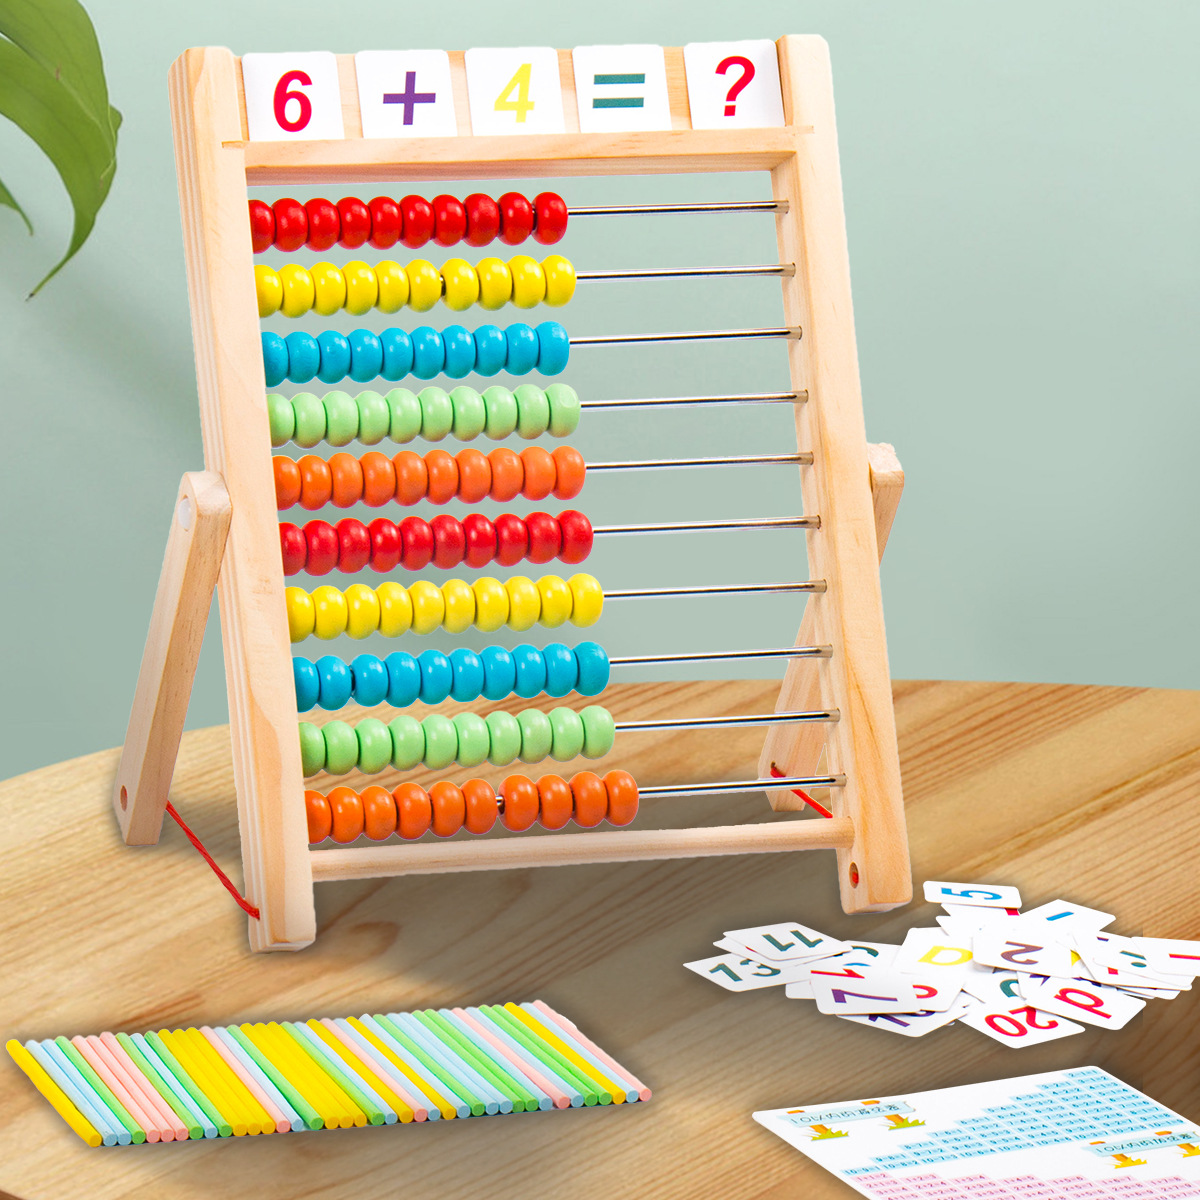 CHILDREN'S Toy Wooden Beads Rack Counting Sticks Logs Calculation Frame Children Kindergarten Educational Early Childhood Toy